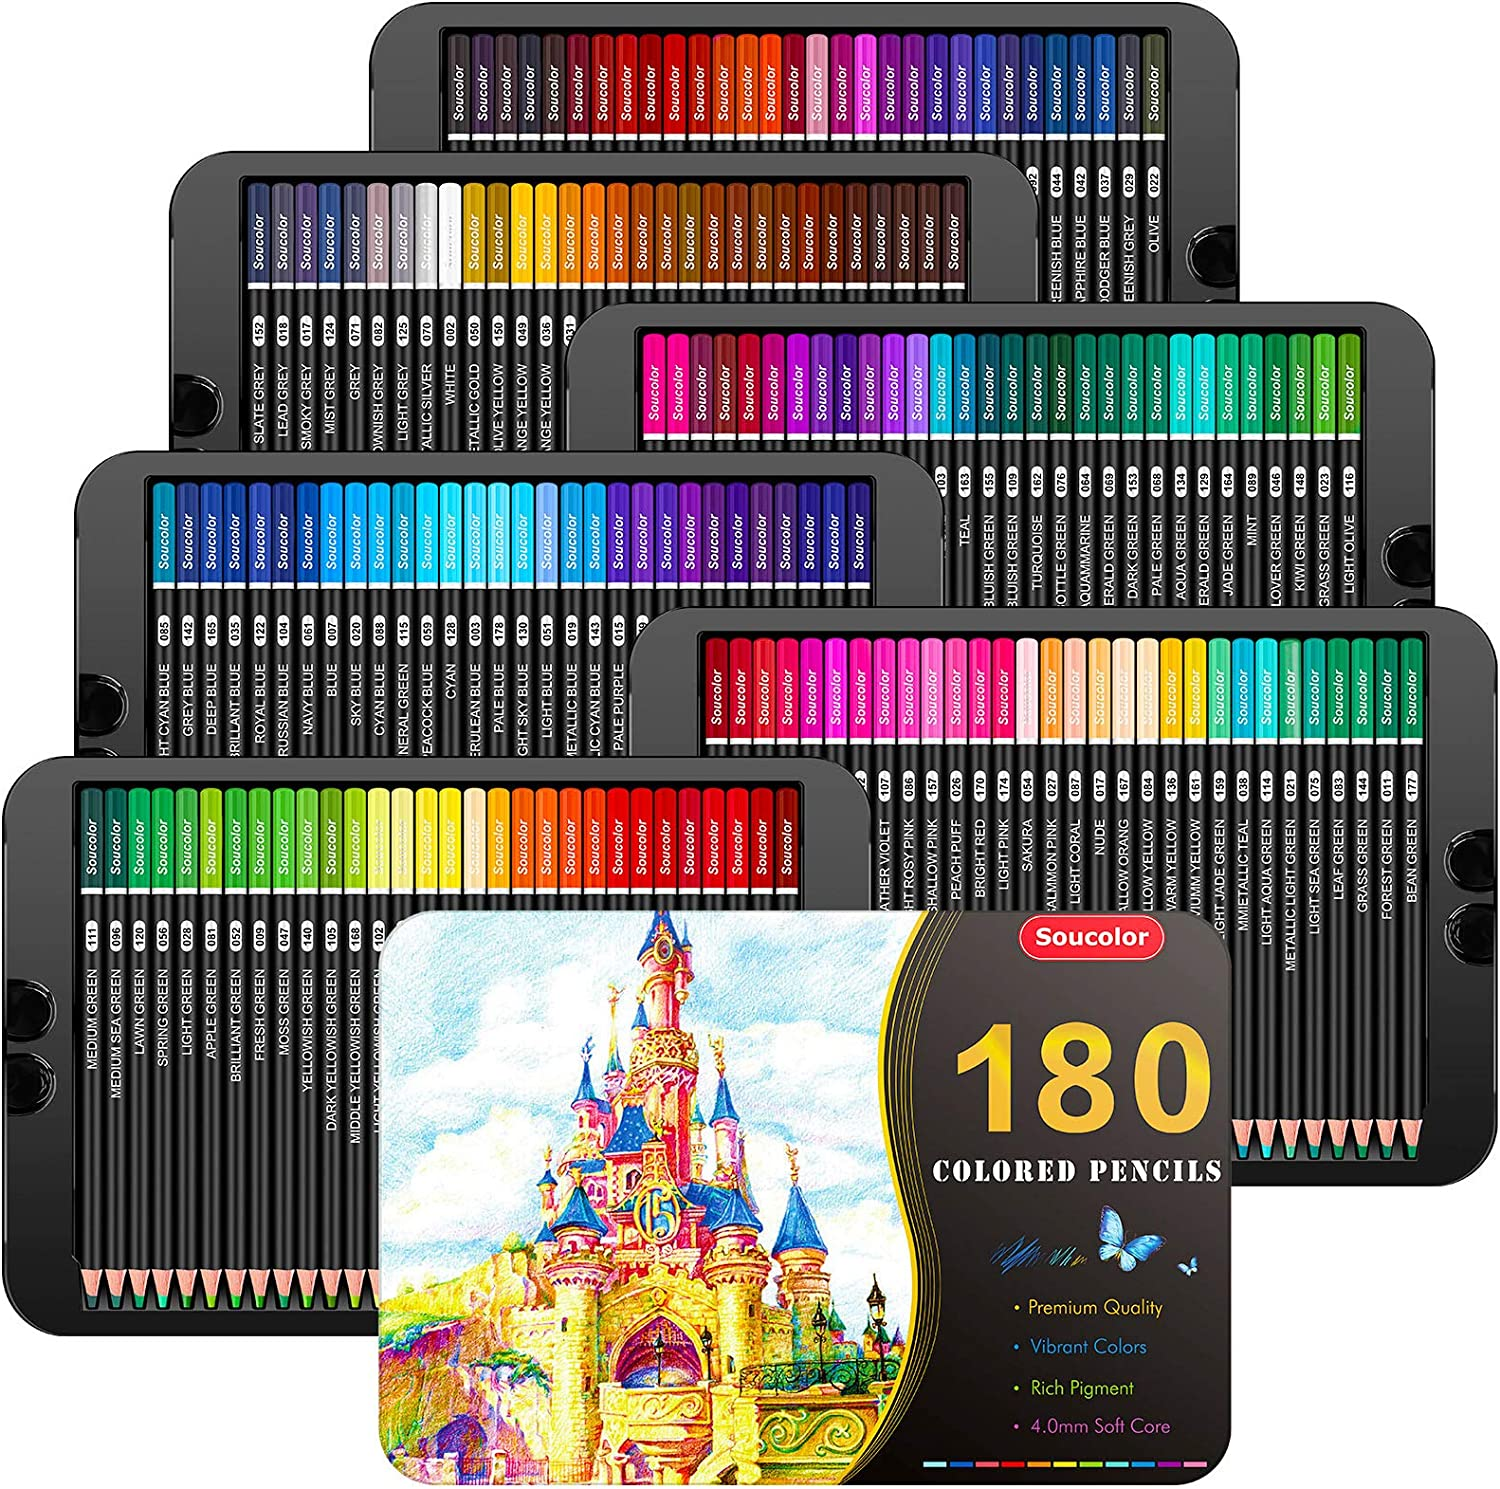 Soucolor 180-Color Artist Colored Pencils Set for Adult Coloring Books, Soft Core, Professional Numbered Art Drawing Pencils for Sketching Shading Blending Crafting, Gift Tin Box for Beginners Kids